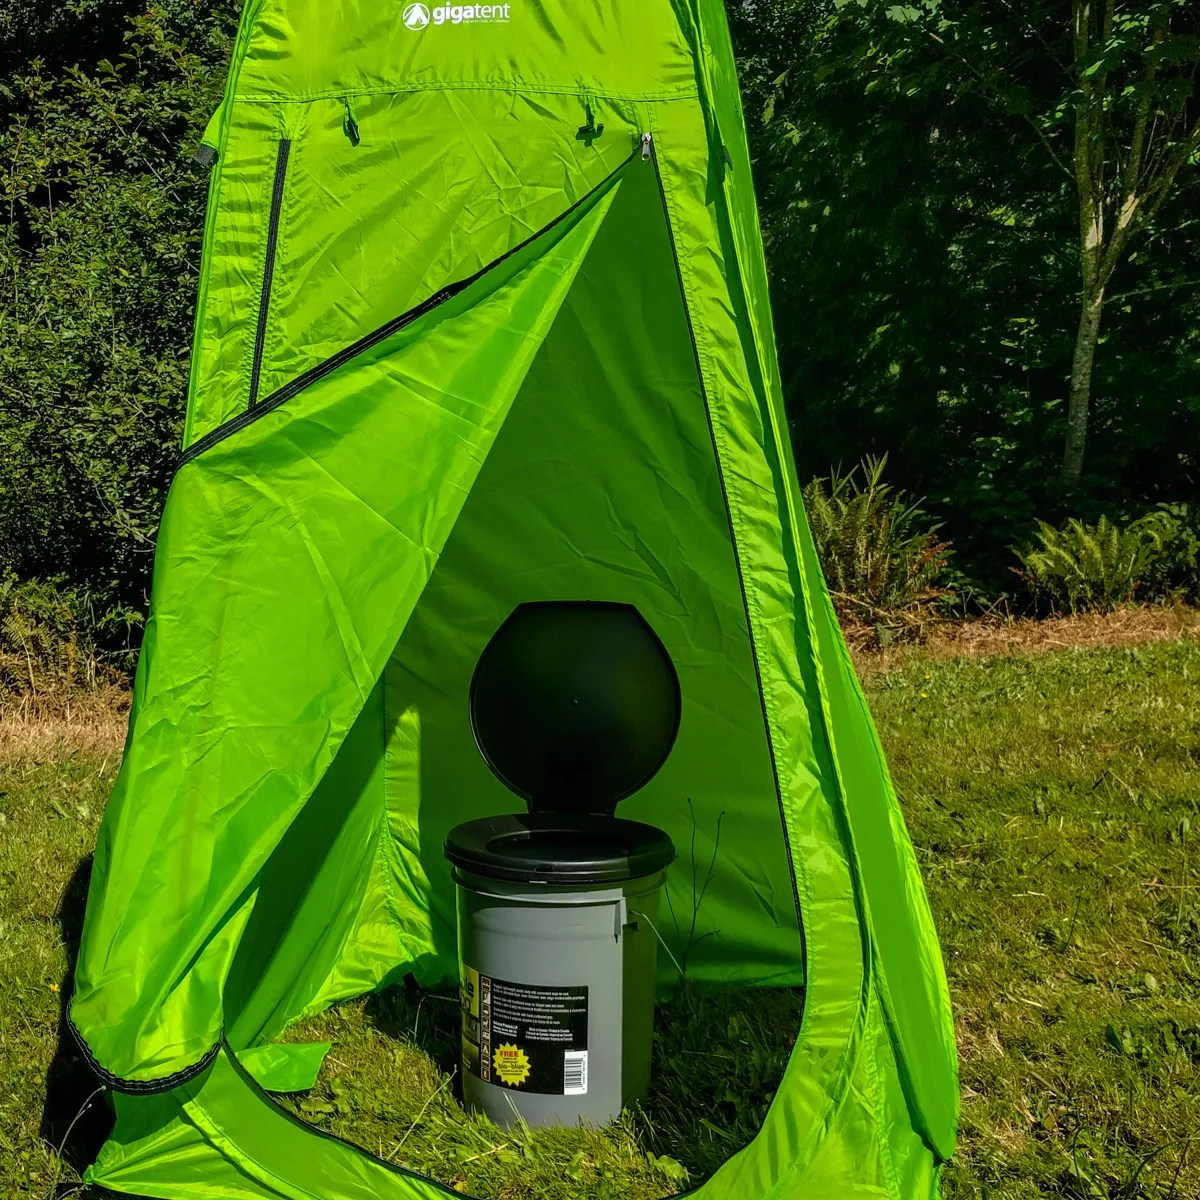 Pop-up toilet tent